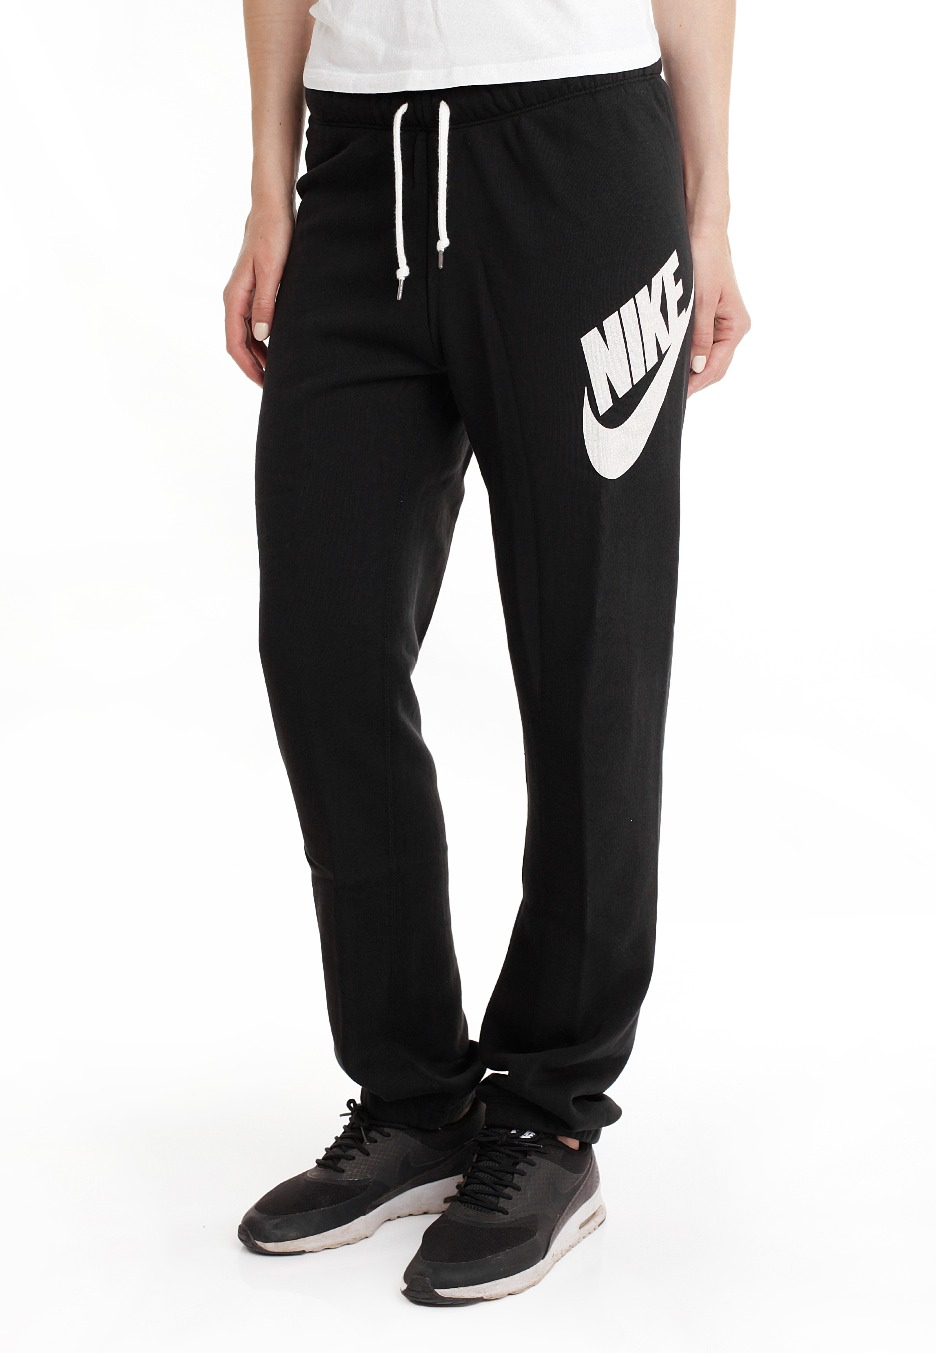 Our women's black pants are the classic design that can be worn for almost any occasion. Our large assortment of styles and sizes give you the ability to find a pair of women's black pants .